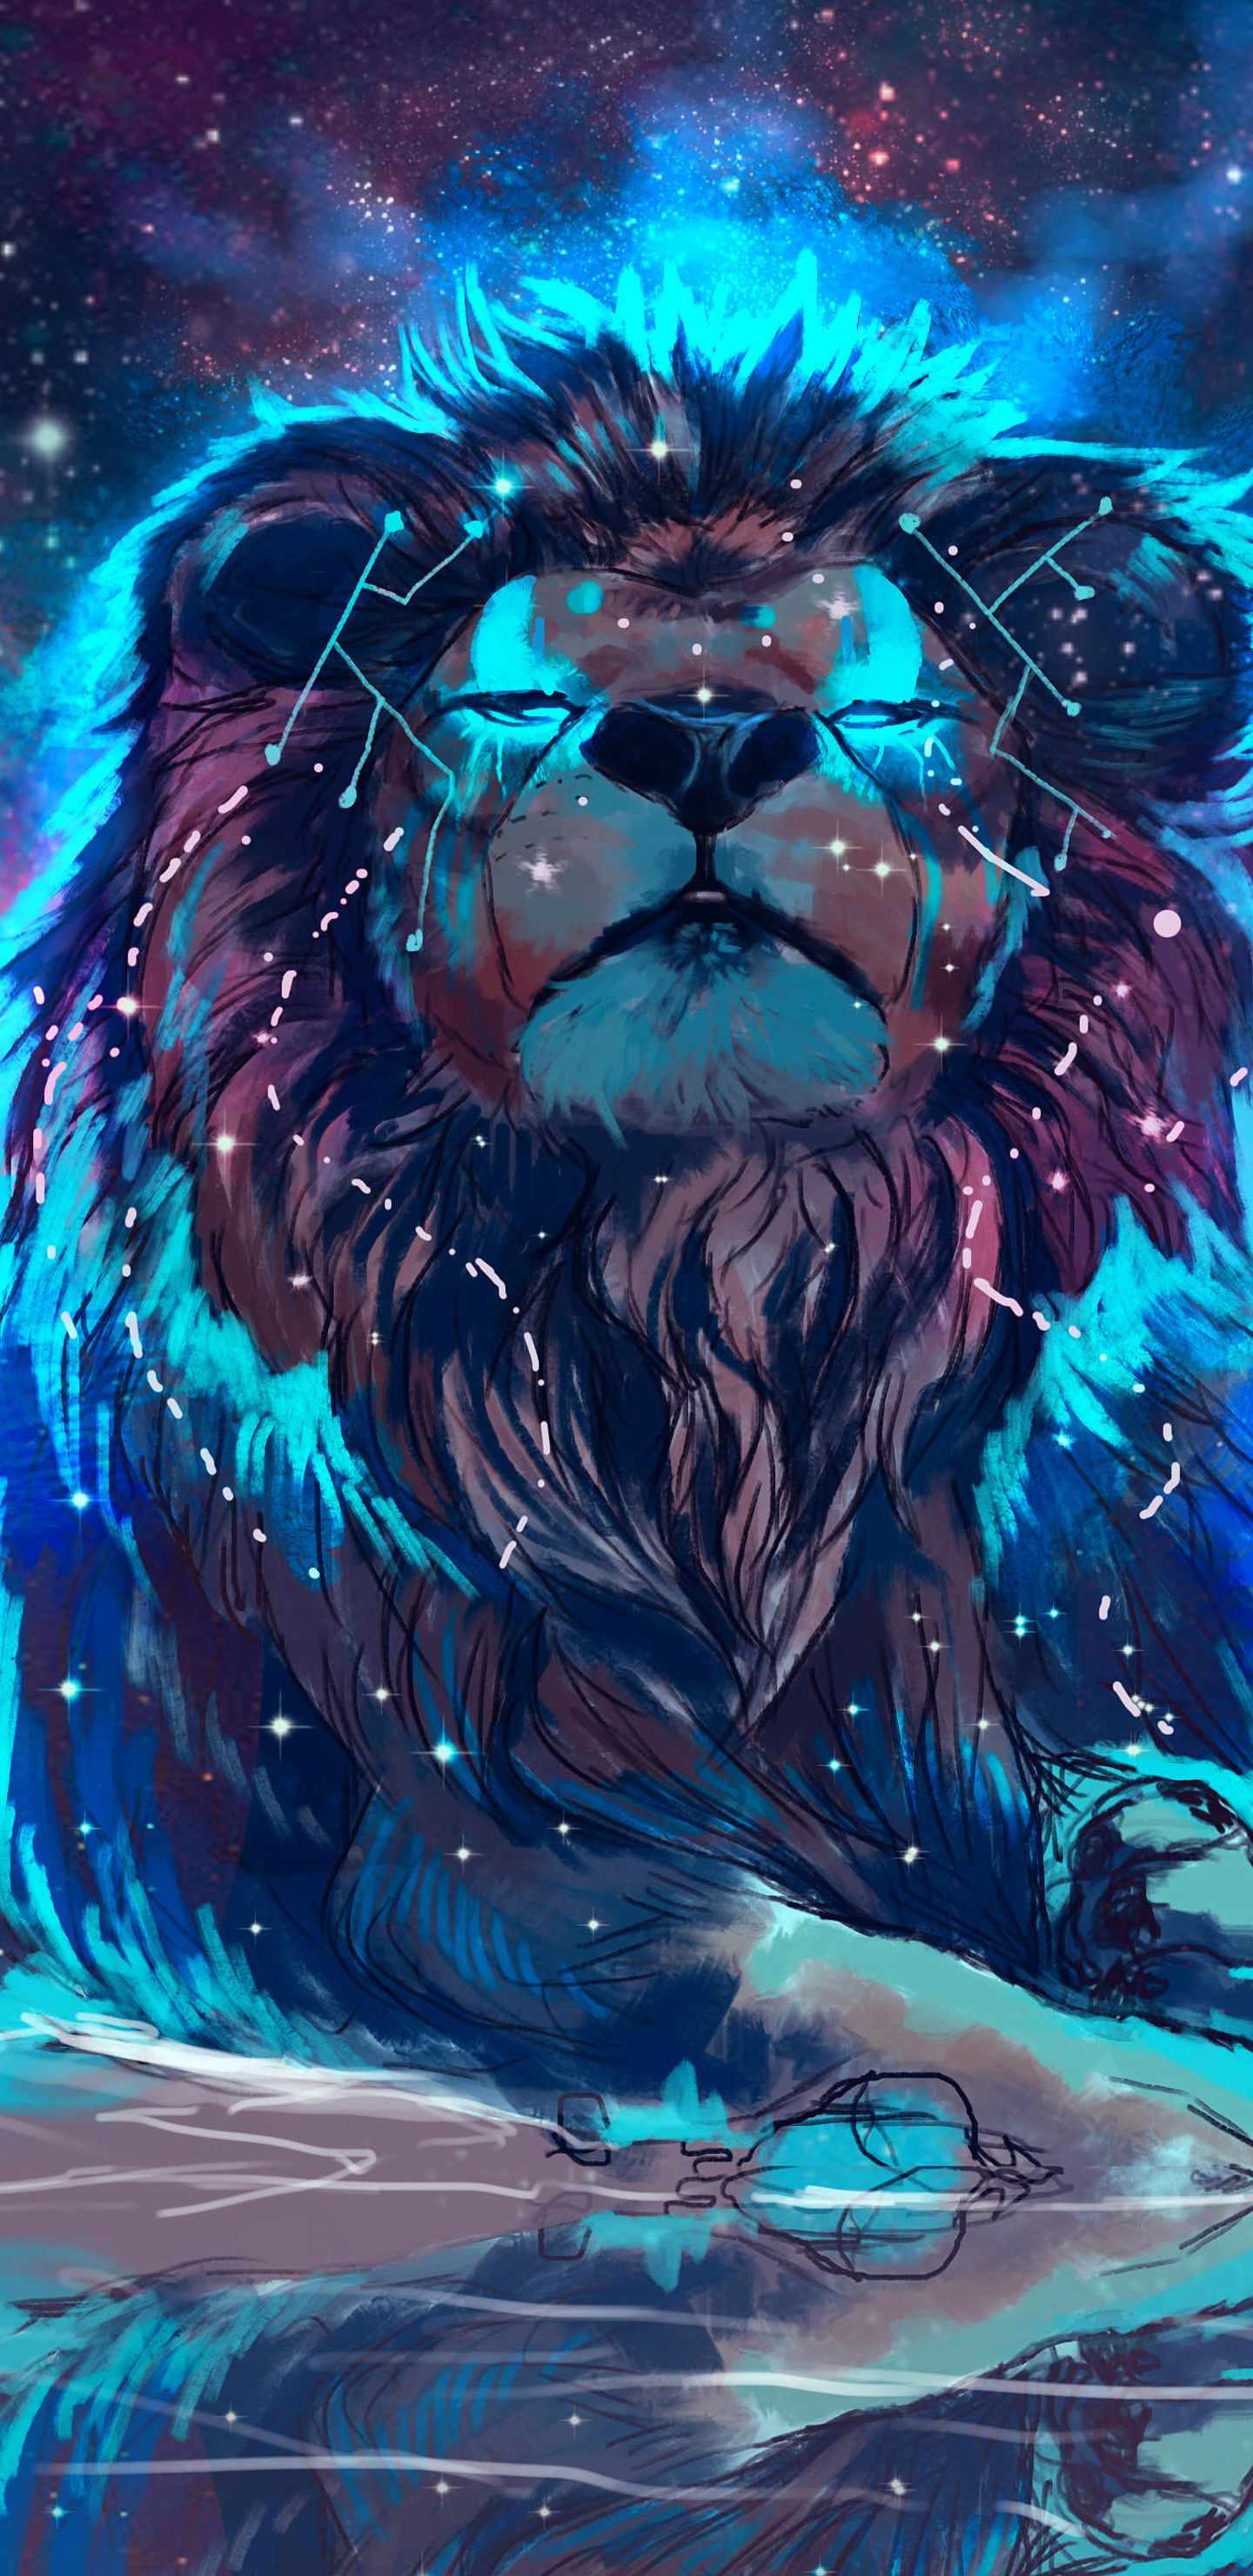 1440x2960 68+ Colorful Lion Wallpapers on WallpaperPlay